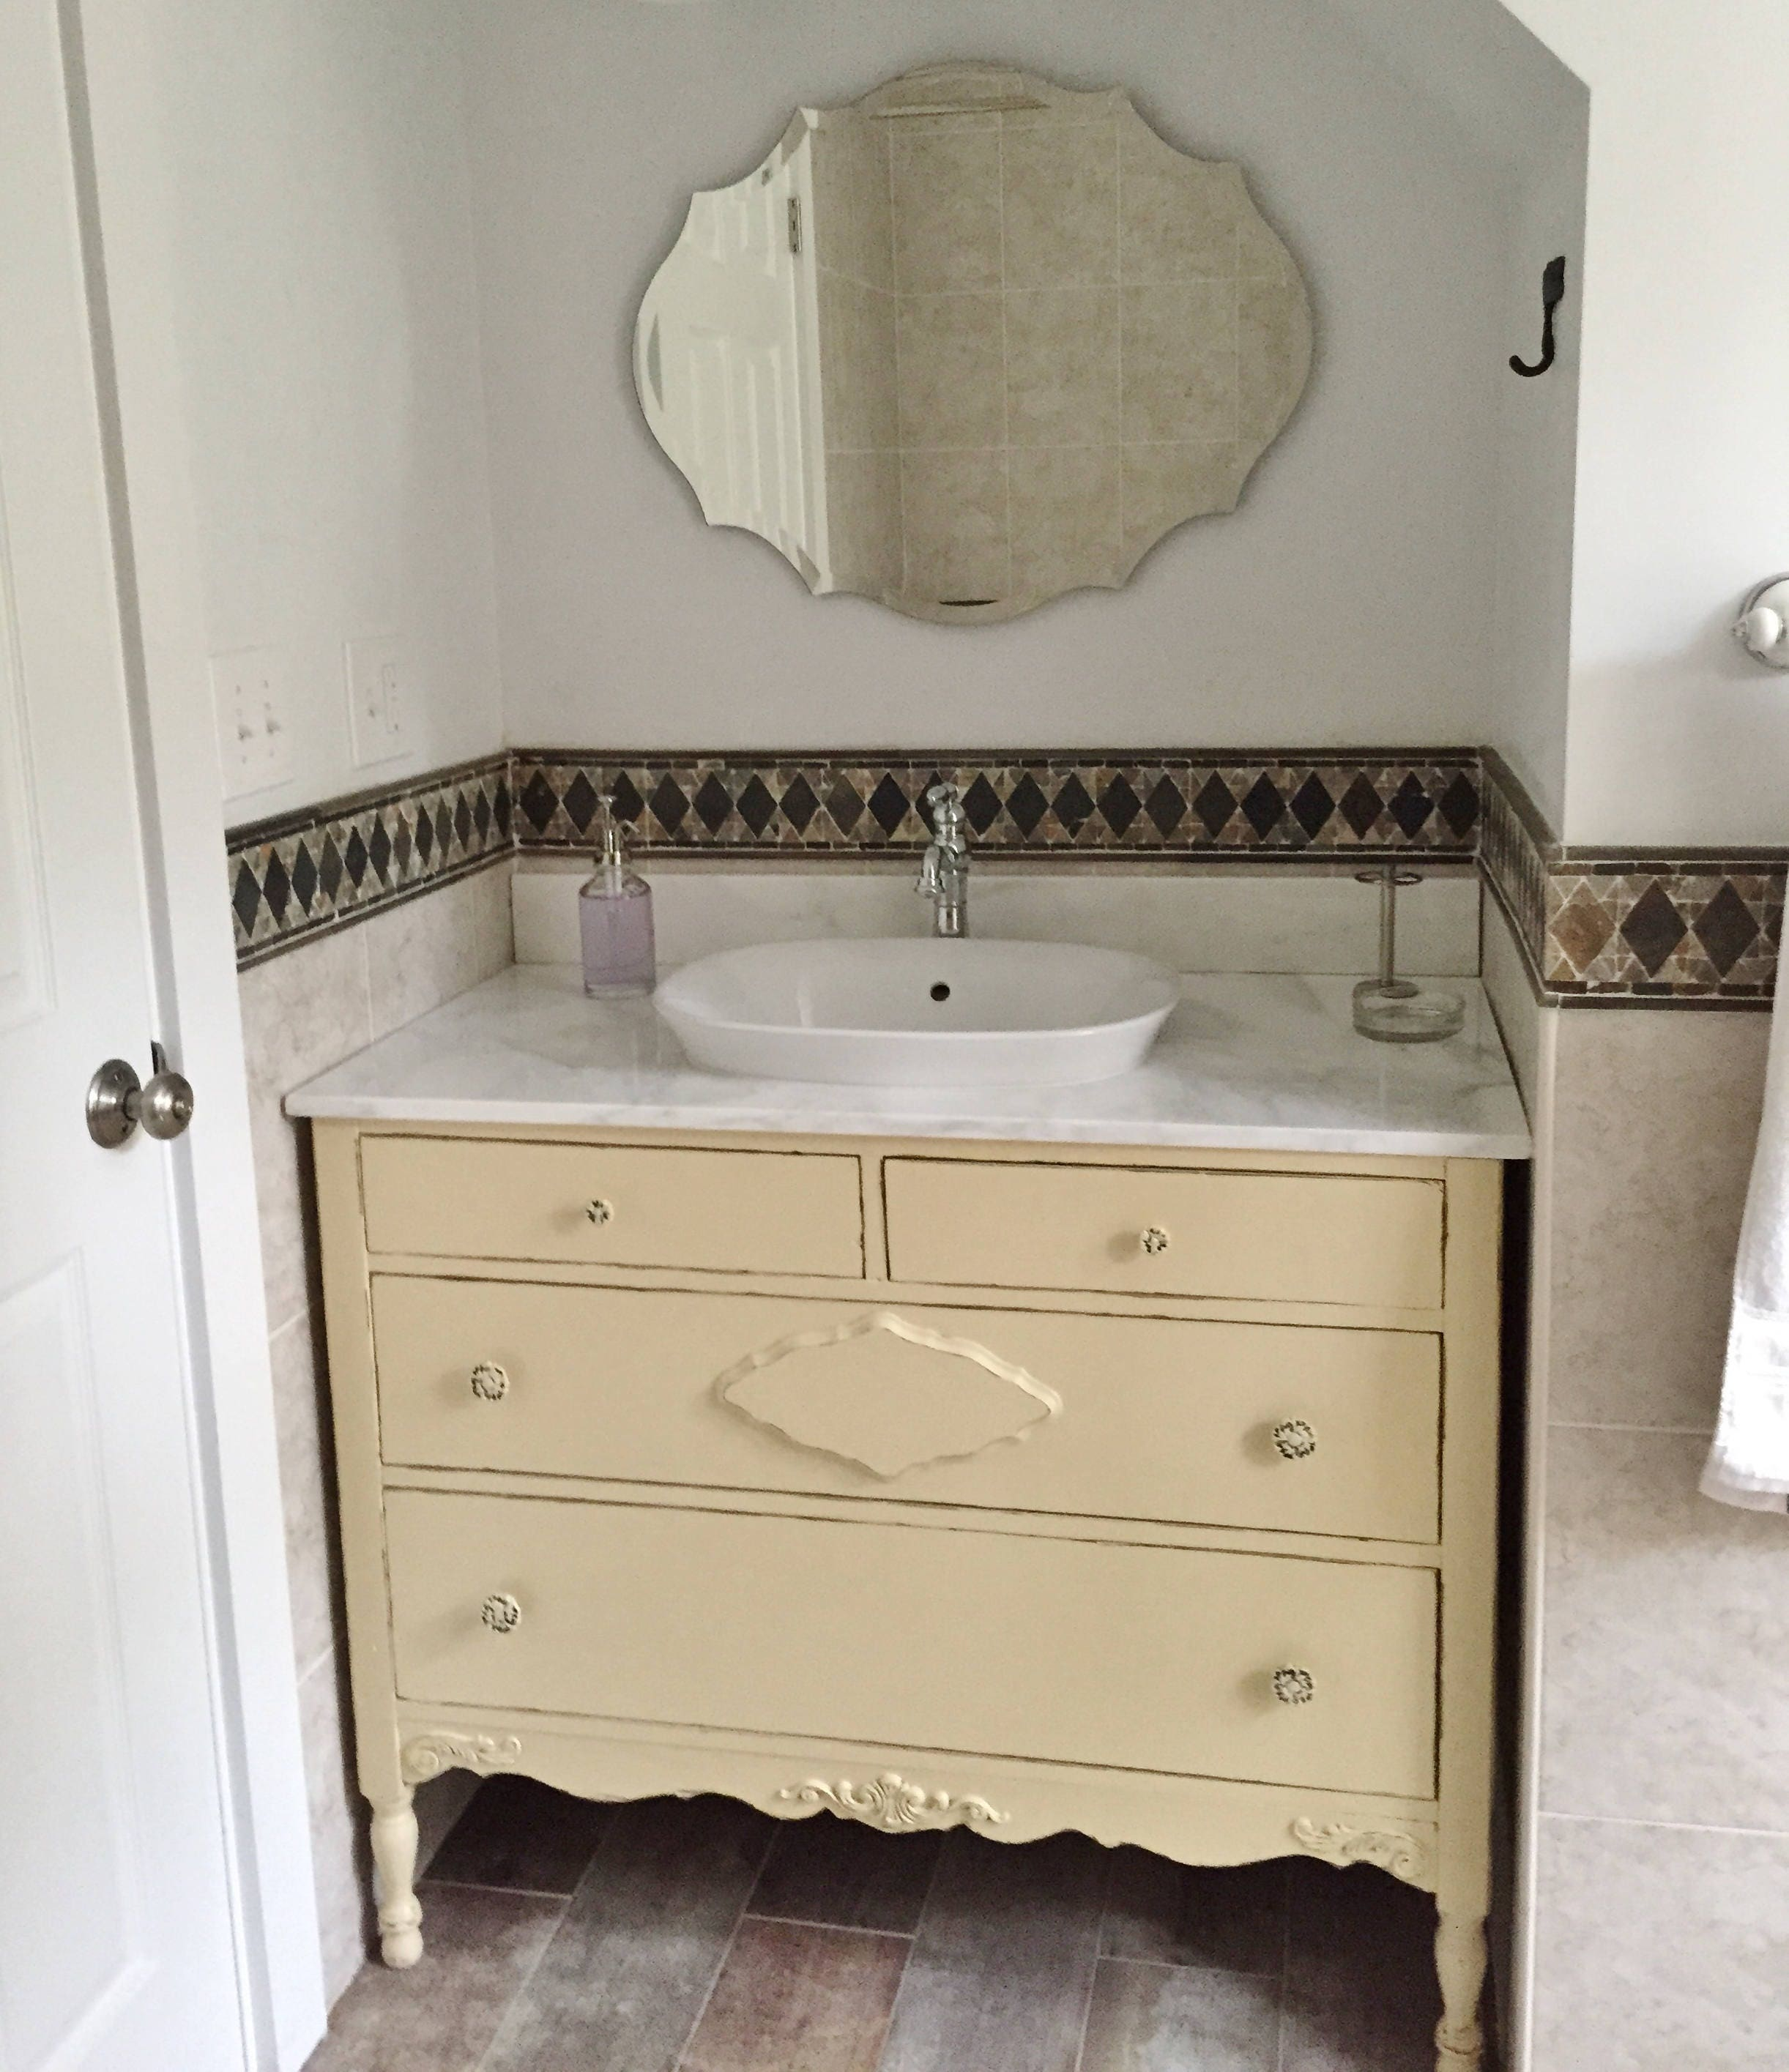 antique size bath exclusive unique interior sink adorable also cabinets appliance rustic full sinks vanities bathrooms homes vanity furniture comfortable for design wooden r cabinet lights comfor ideas of and homemade gray bathroom plus with